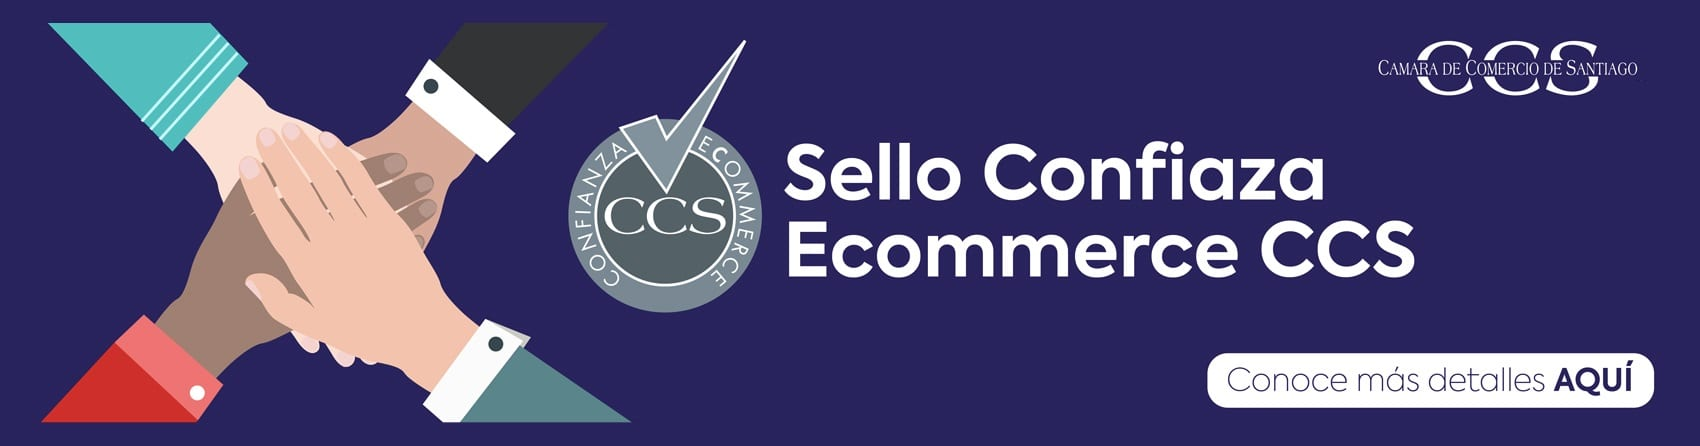 https://www.ecommerceccs.cl/wp-content/uploads/2020/06/banner_sello-1.jpg